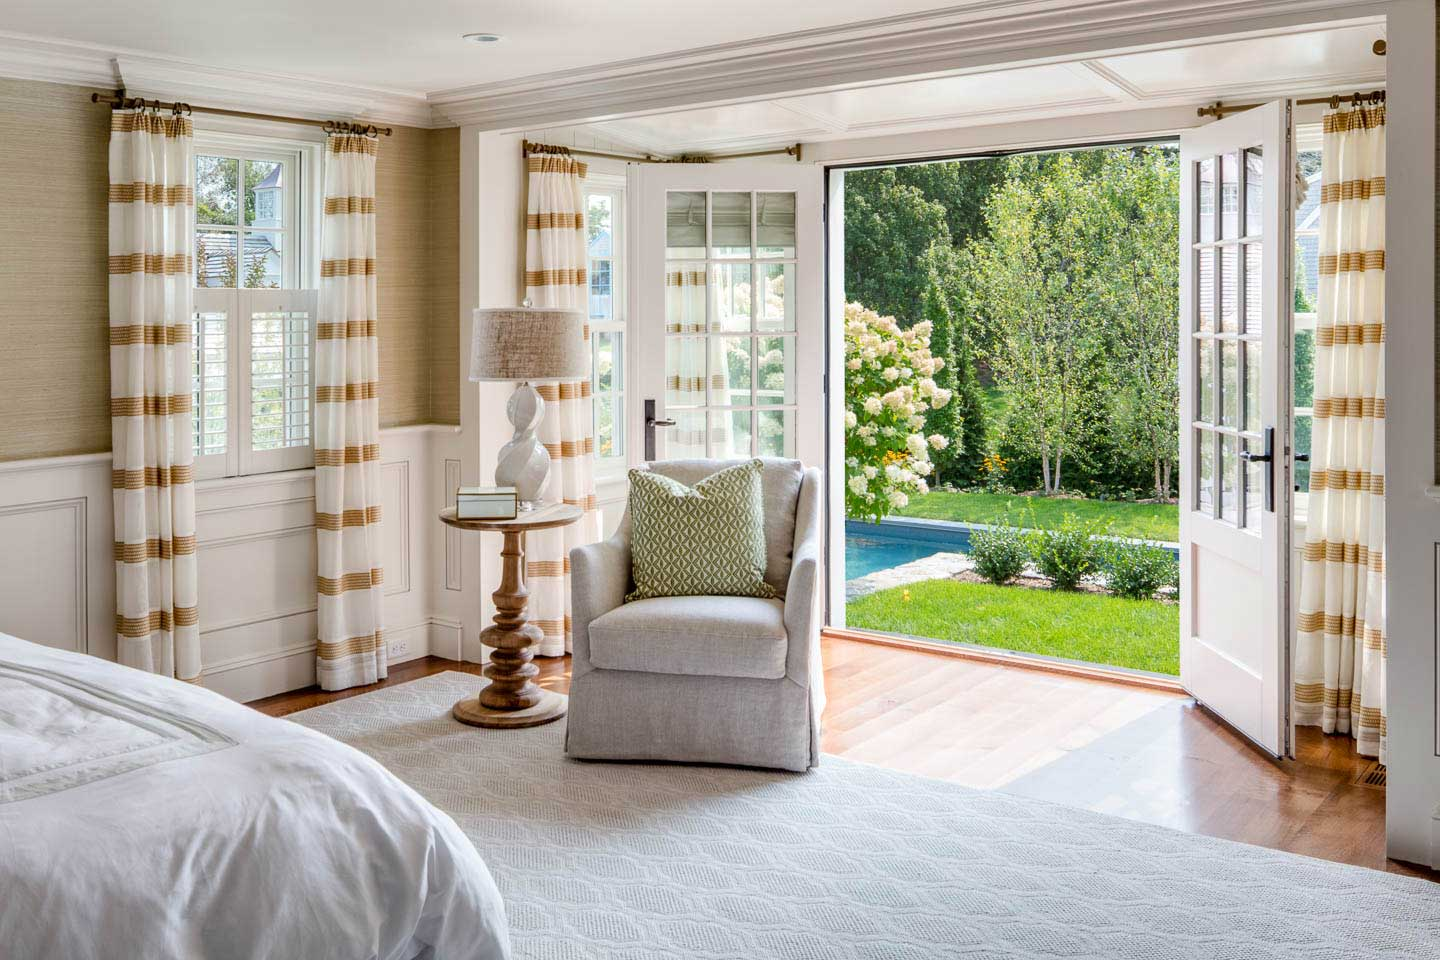 cape house, bedroom, french doors, pool, bedroom seating, interior design